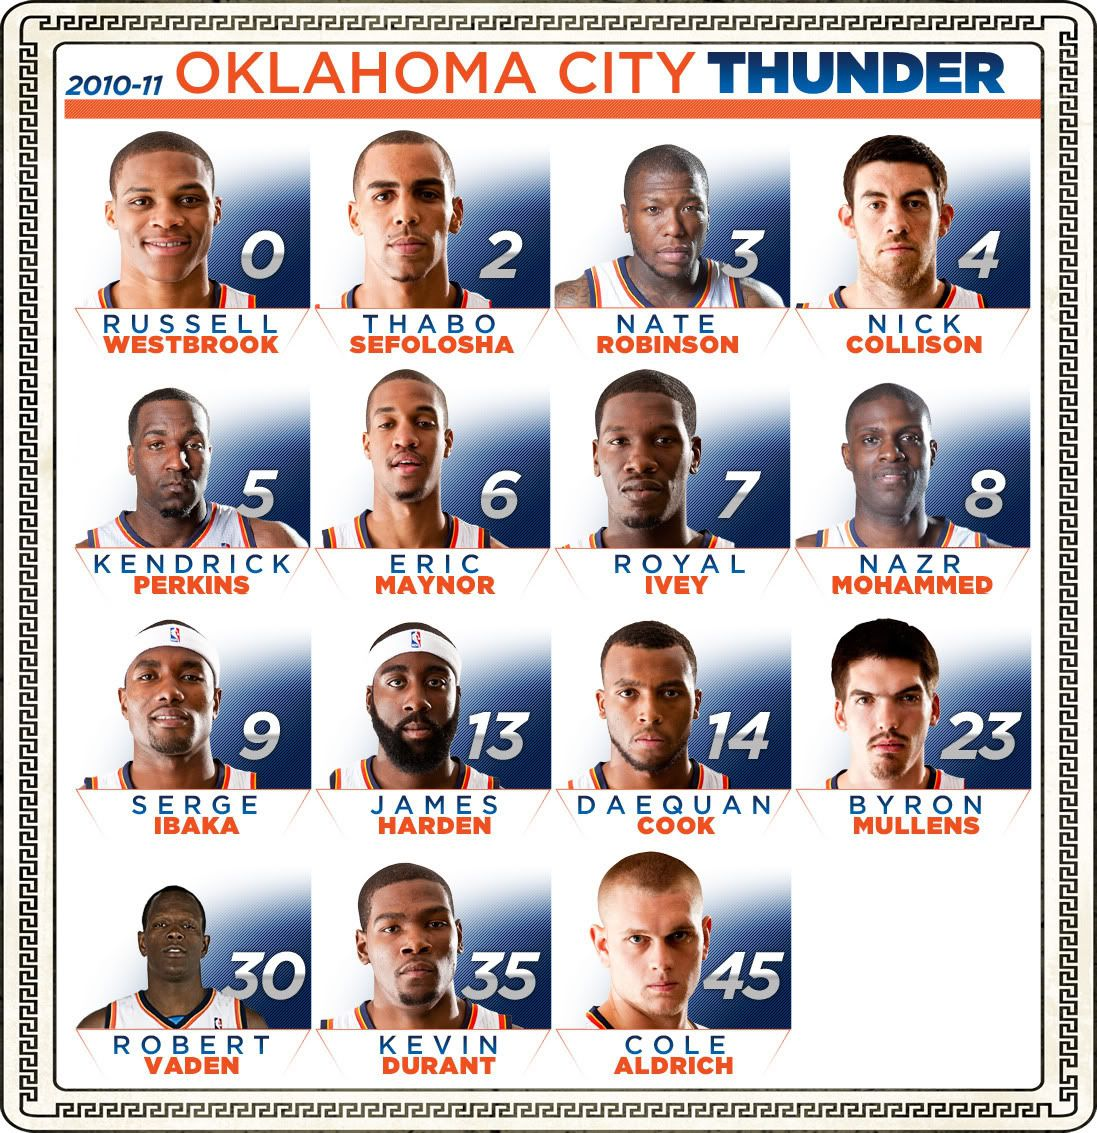 Thunder Players Pictures Doug Dawgz Blog What A Great Thunder Team What Great Thunder Fans Thunder Team Thunder Thunder Players